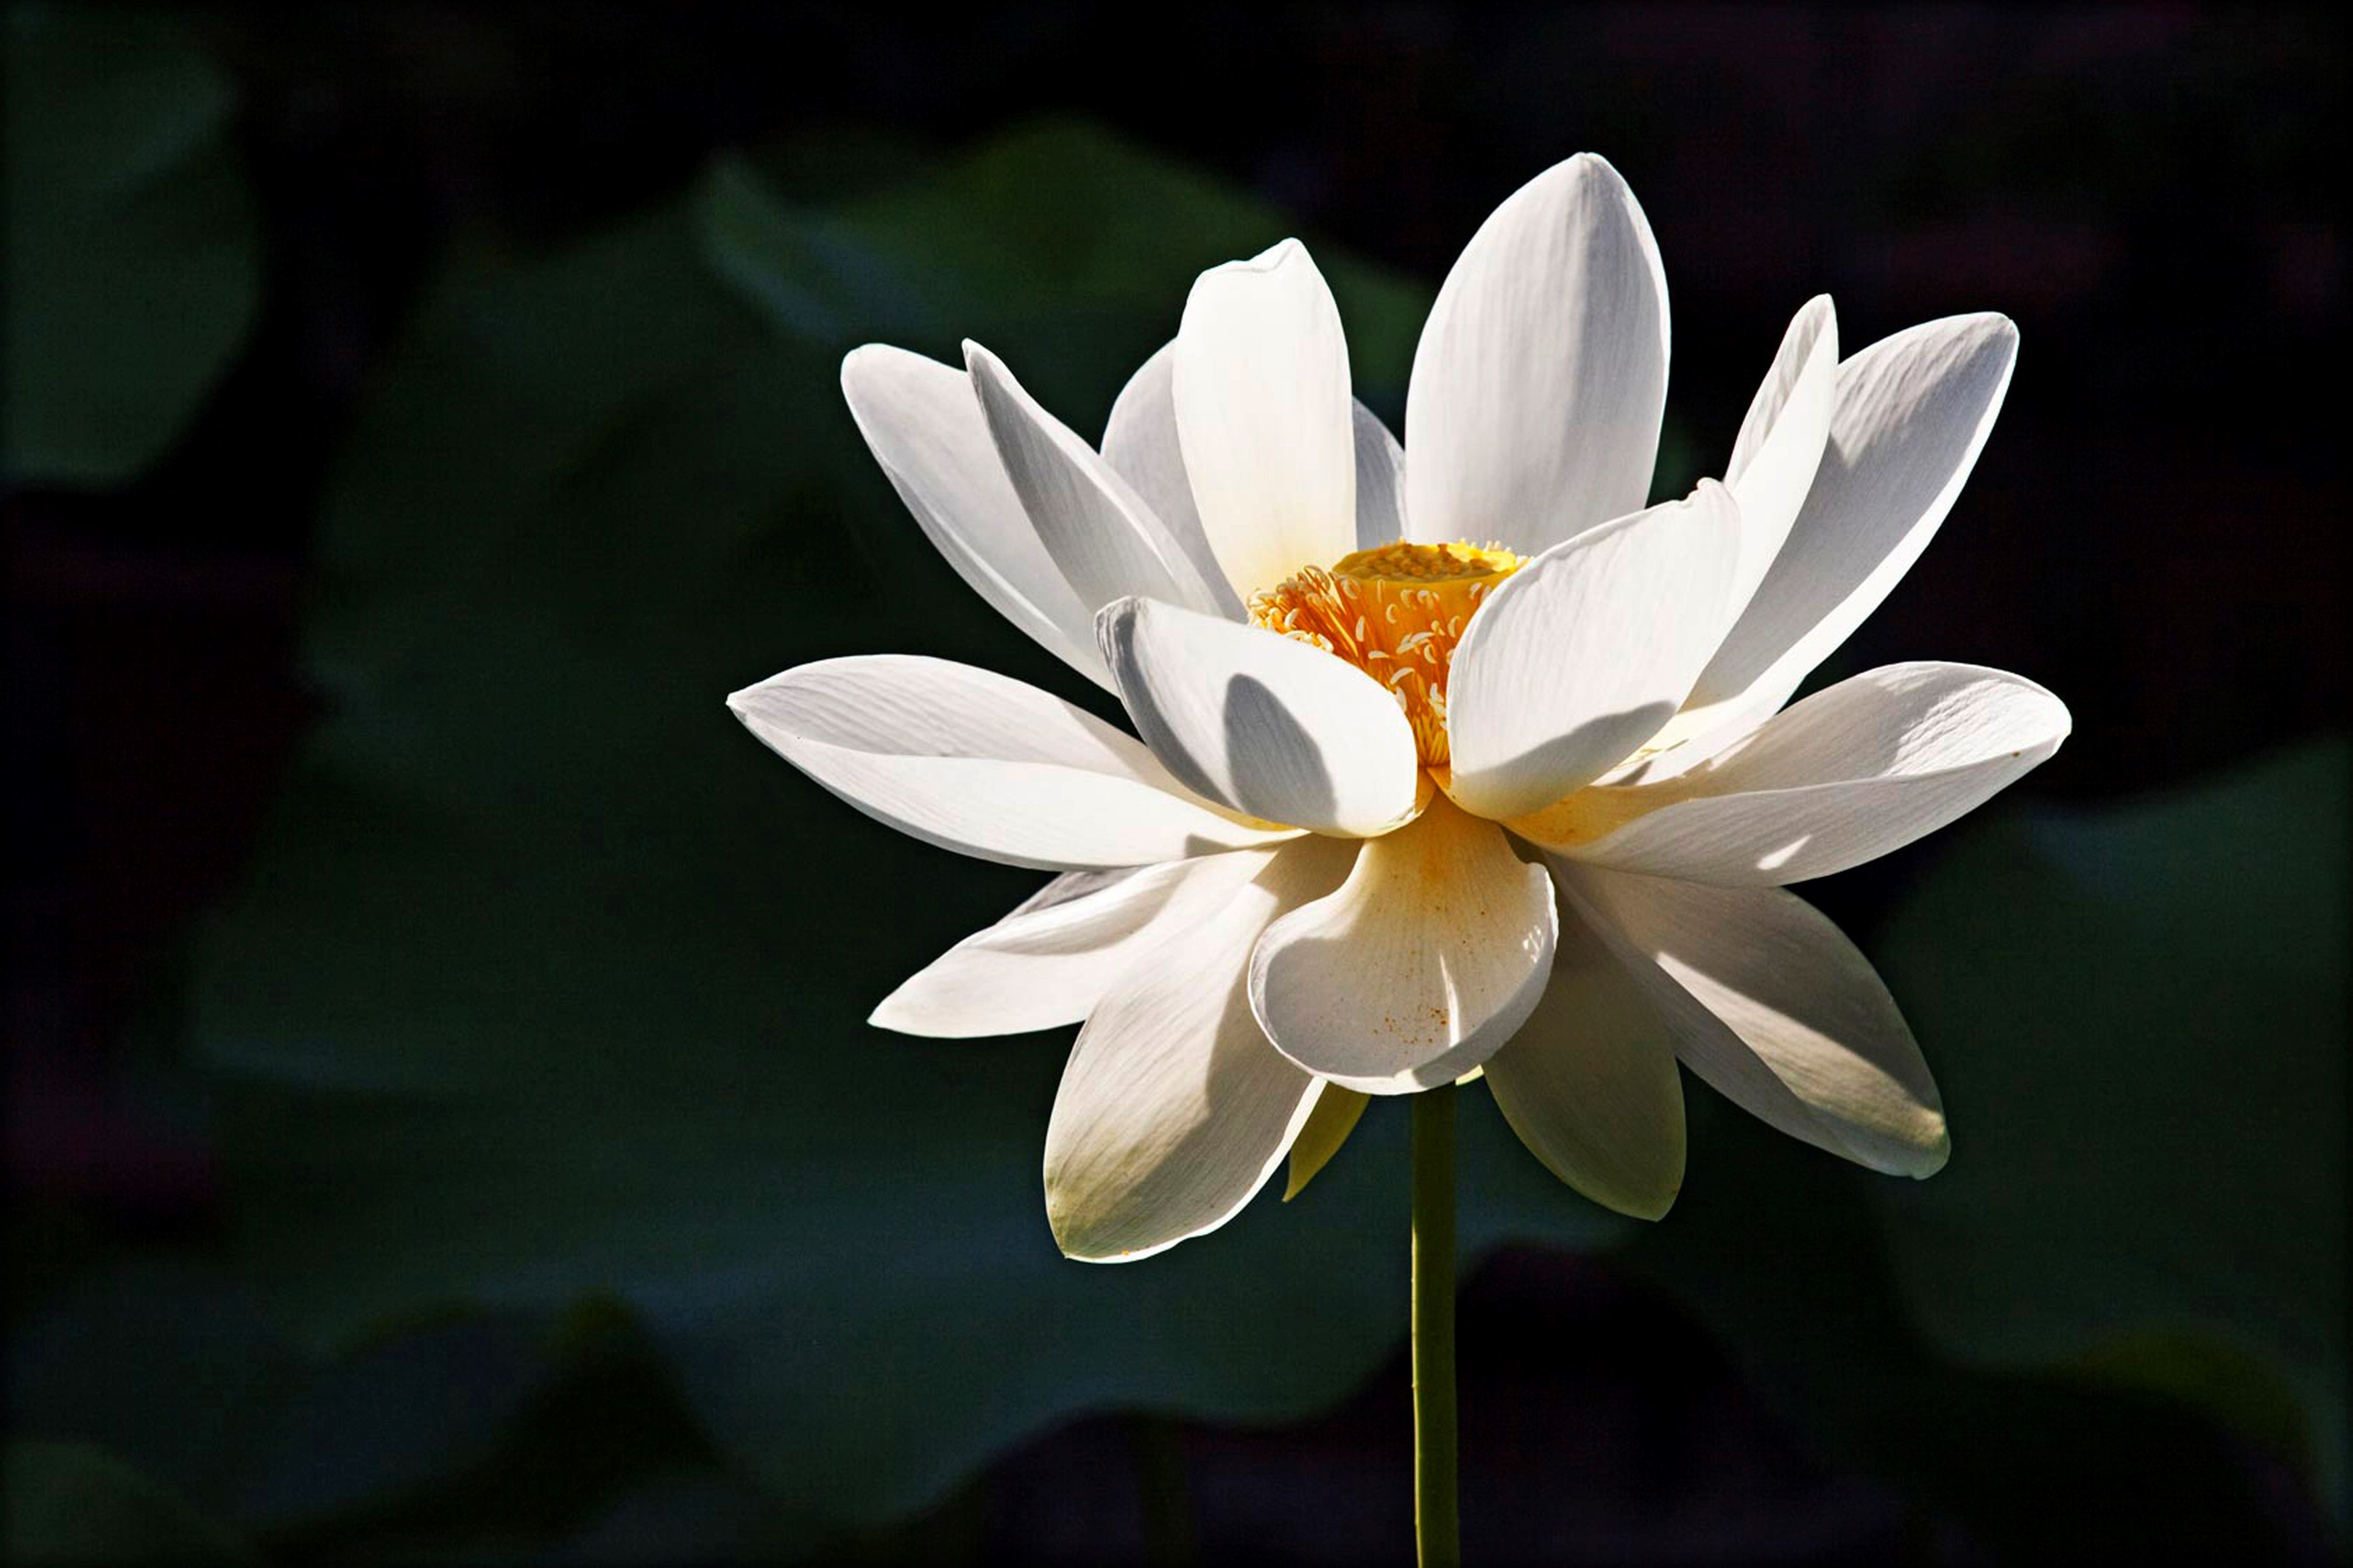 Lotus Flower Meaning , What is the Symbolism Behind the Lotus